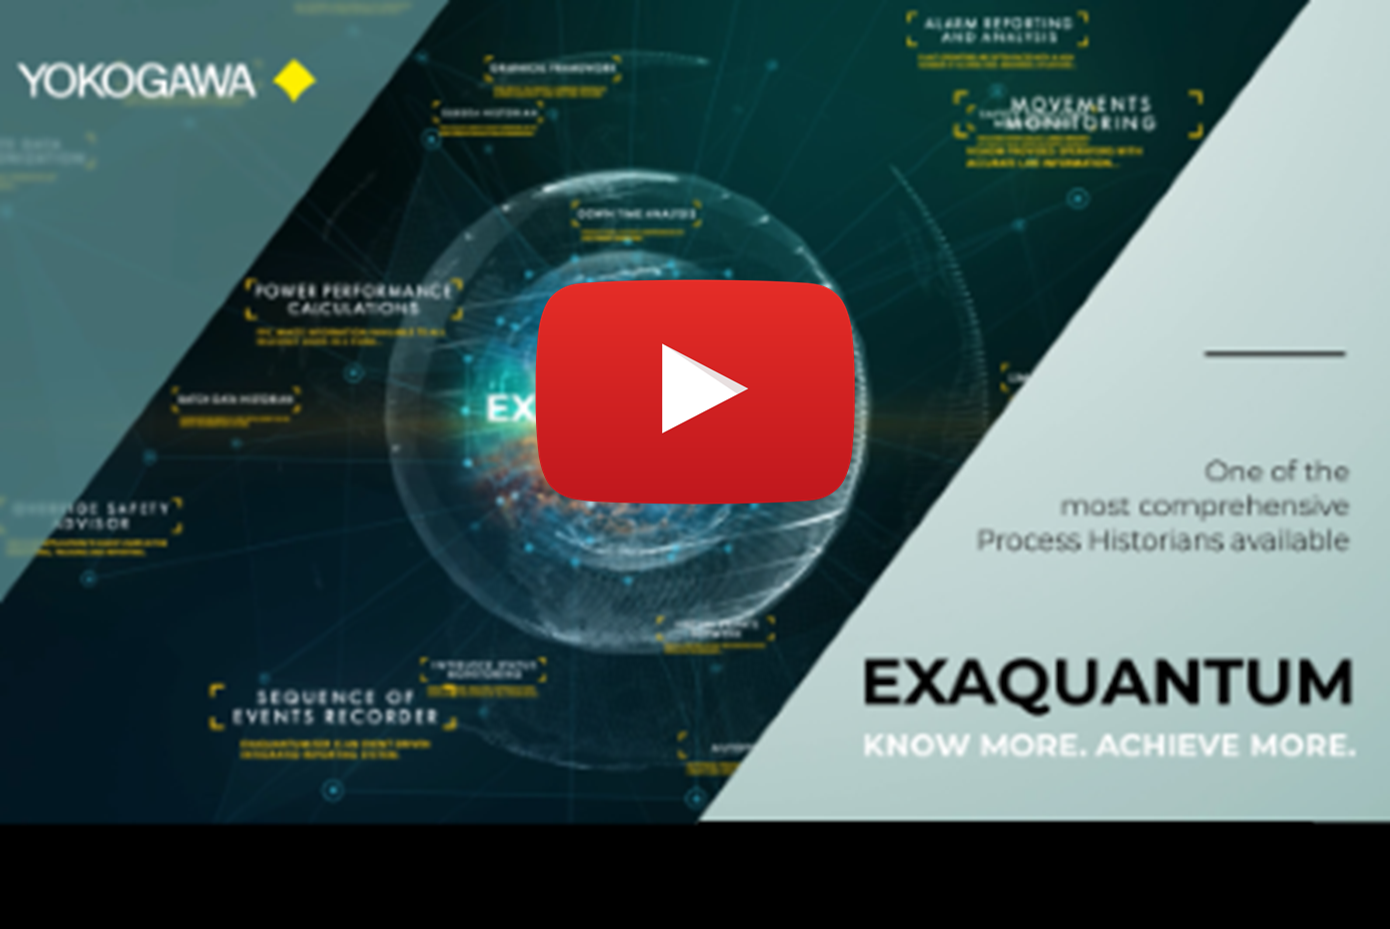 Exaquantum Overview Video